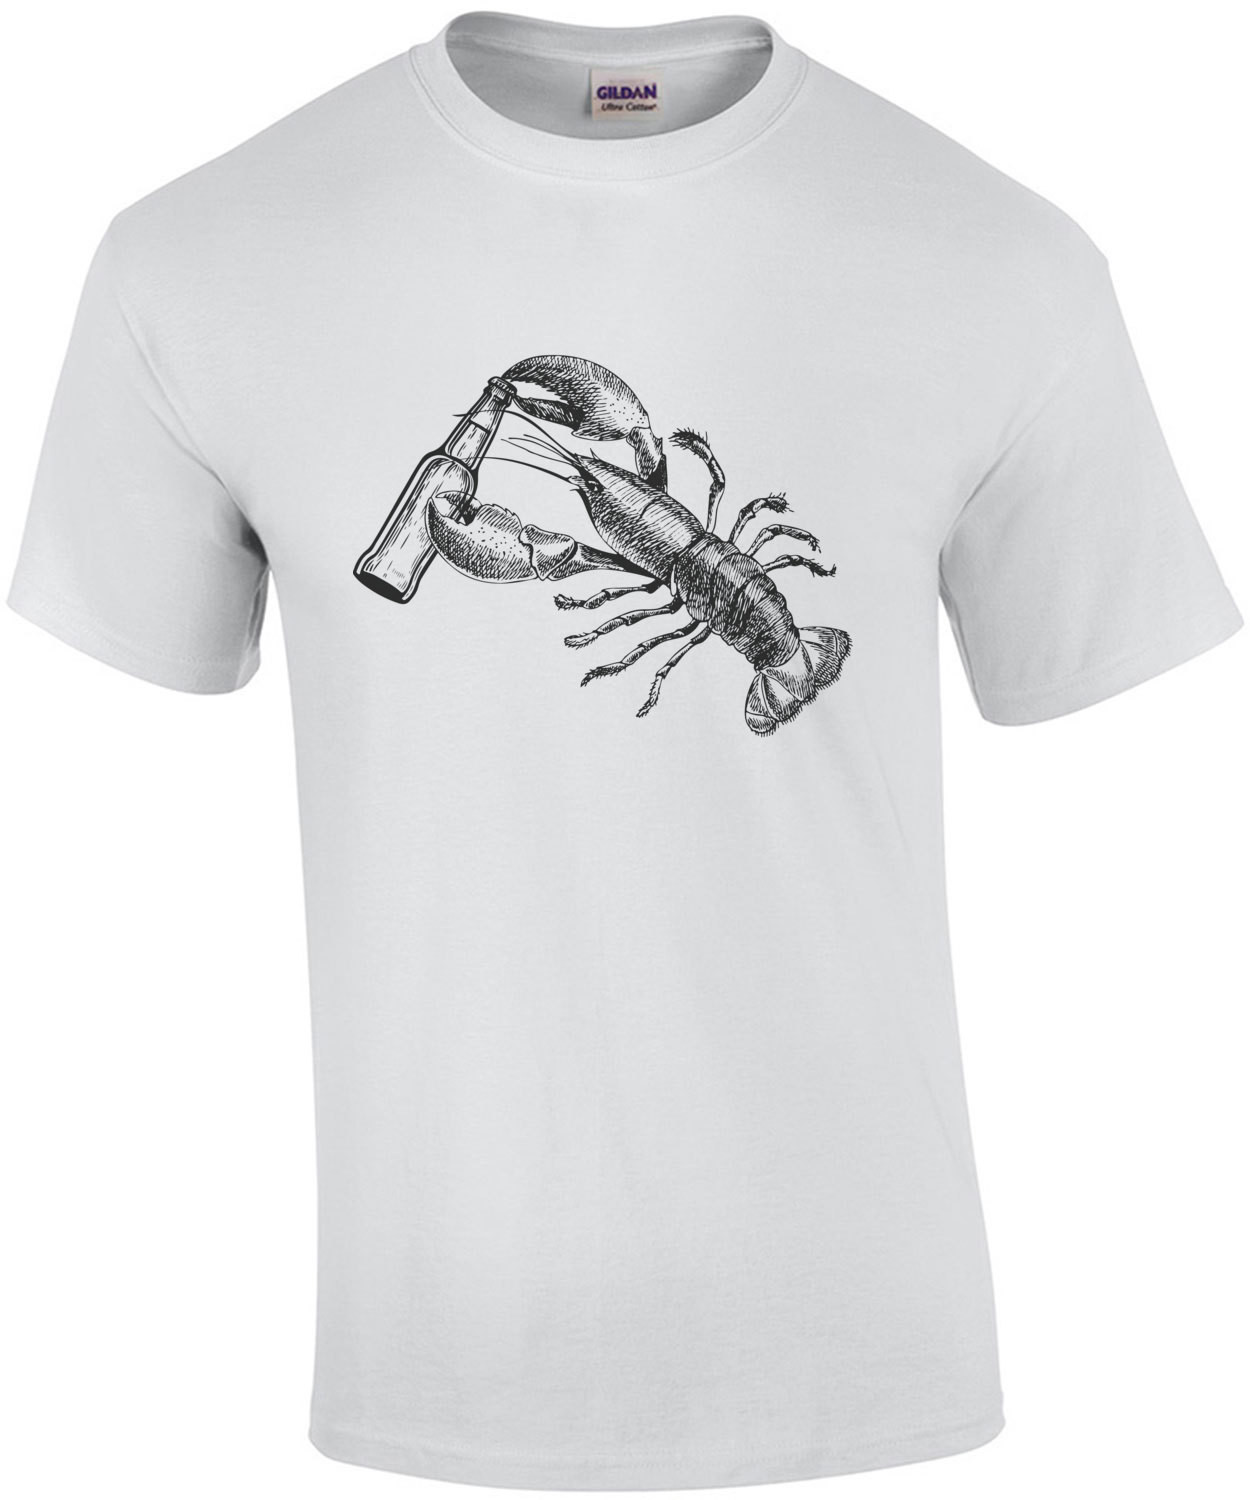 Lobster opening beer bottle t-shirt. Funny lobster t-shirt. Maine T-Shirt